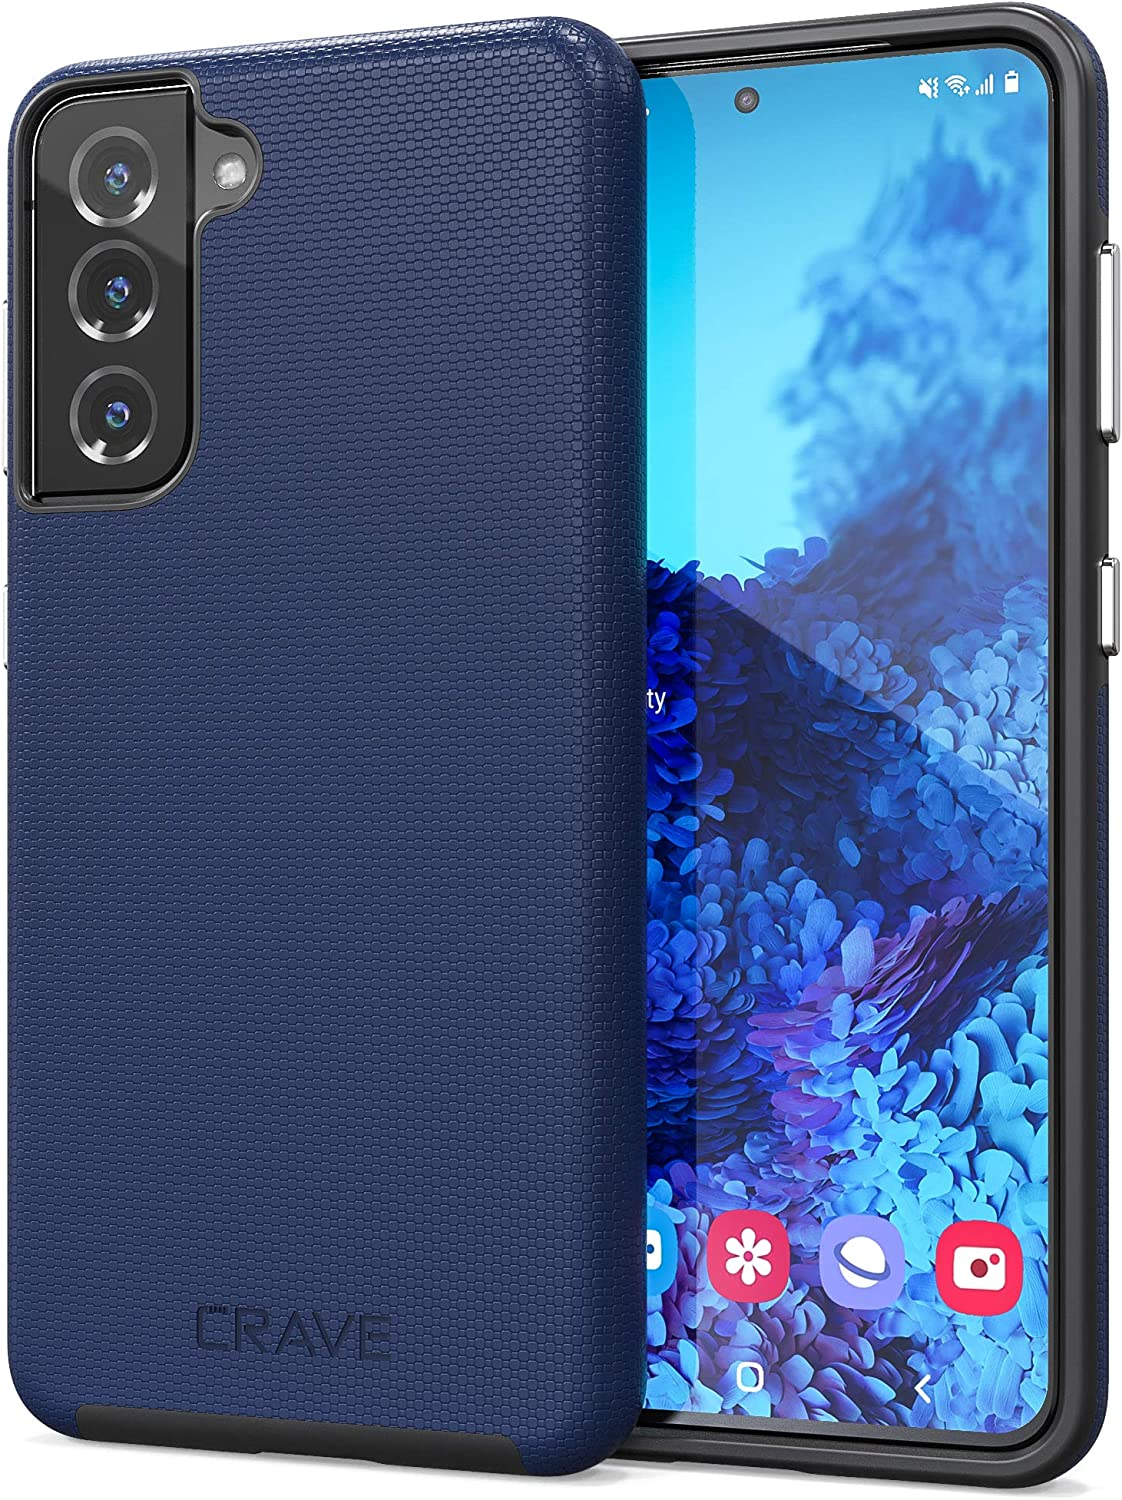 Crave Dual Guard for Galaxy S21 Case, Shockproof Protection Dual Layer Case for Samsung Galaxy S21, S21 5G (6.2 inch) - Navy